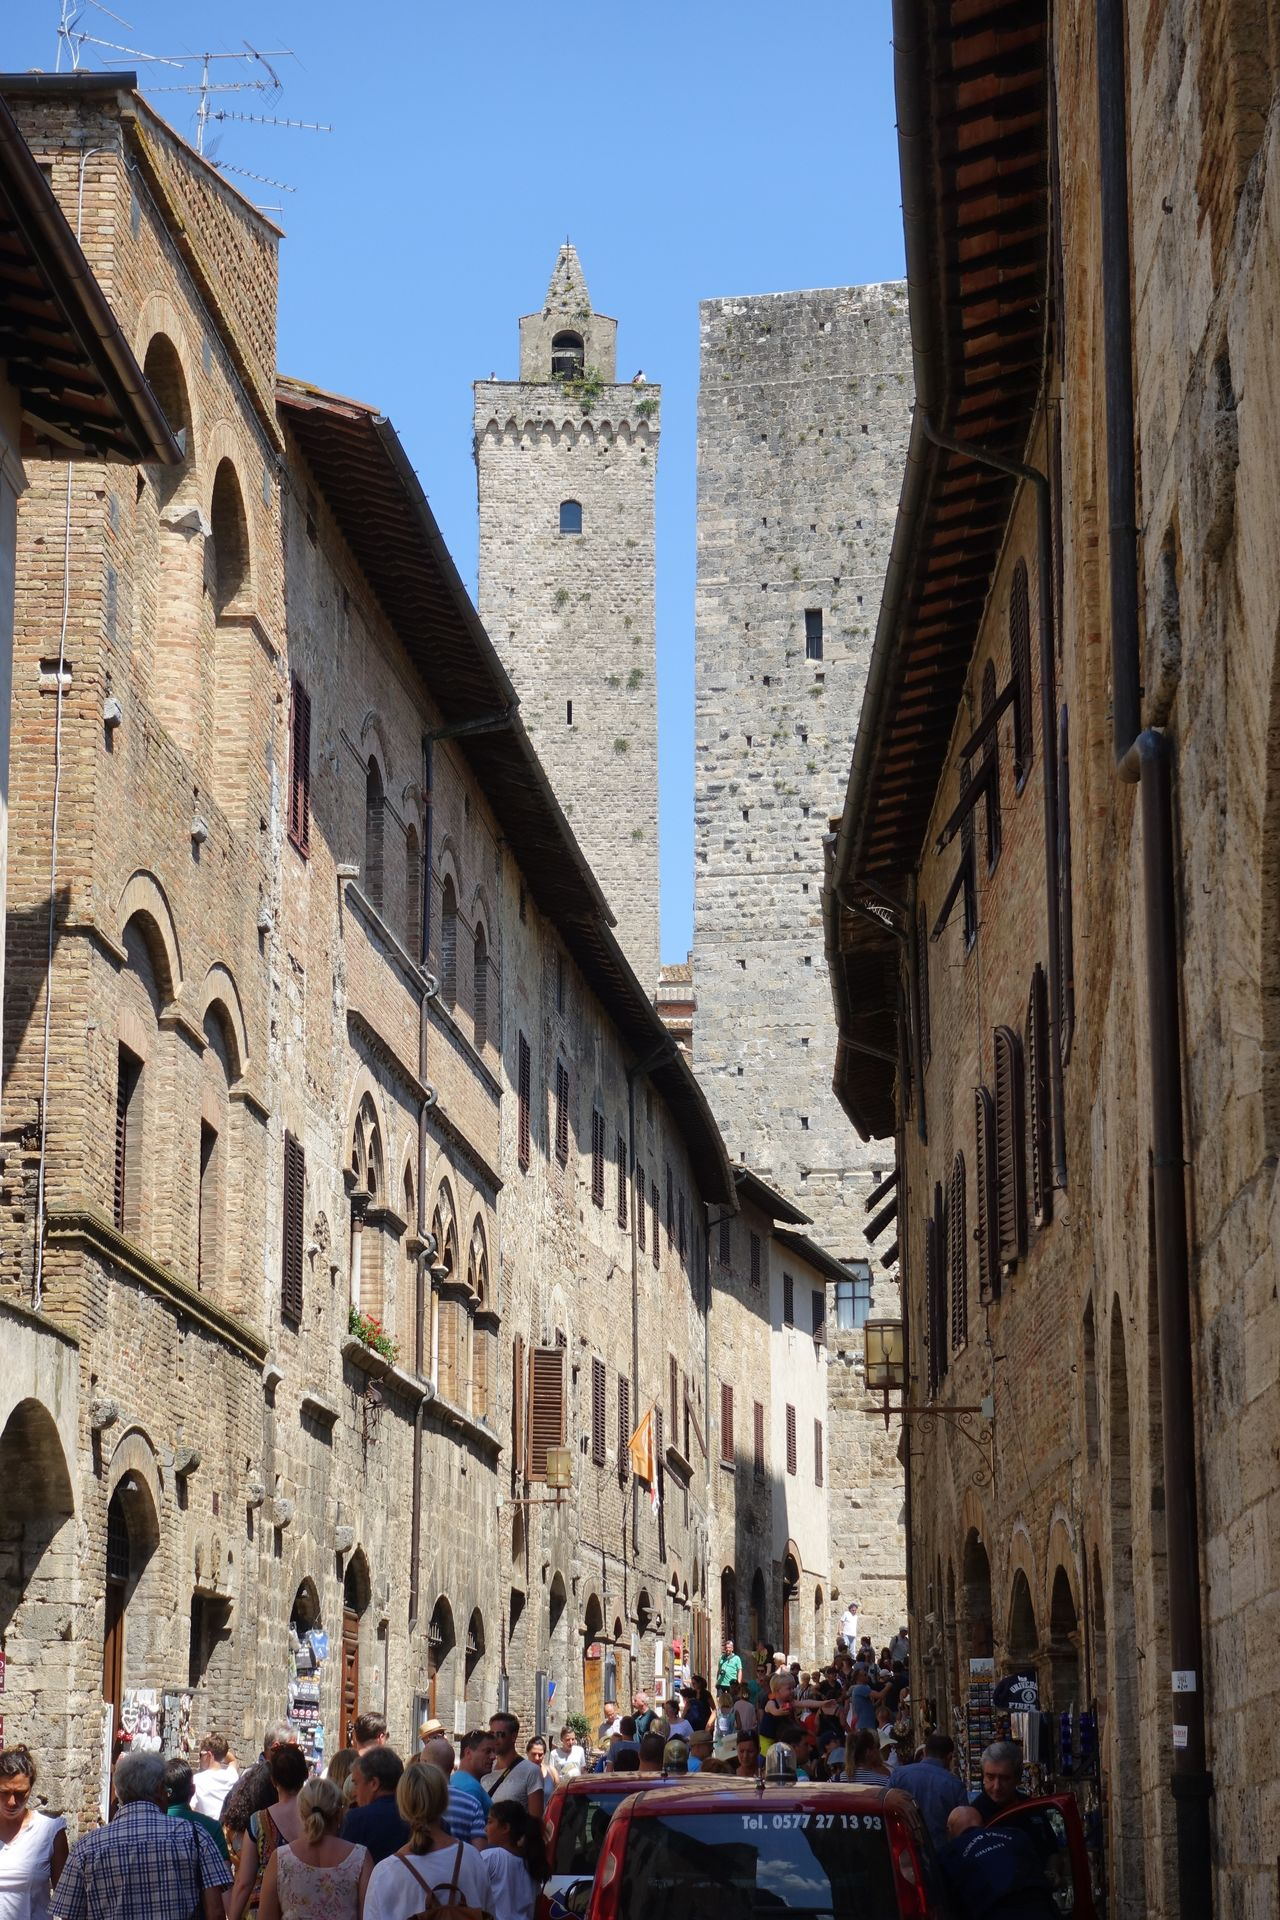 in the Roads Architecture Building Exterior Built Structure Clear Sky Etruscan Civilization Historic Centre Manhatten Skyline Medival City Outdoors San Gimignano Torre Toscana ıtaly Travel Destinations